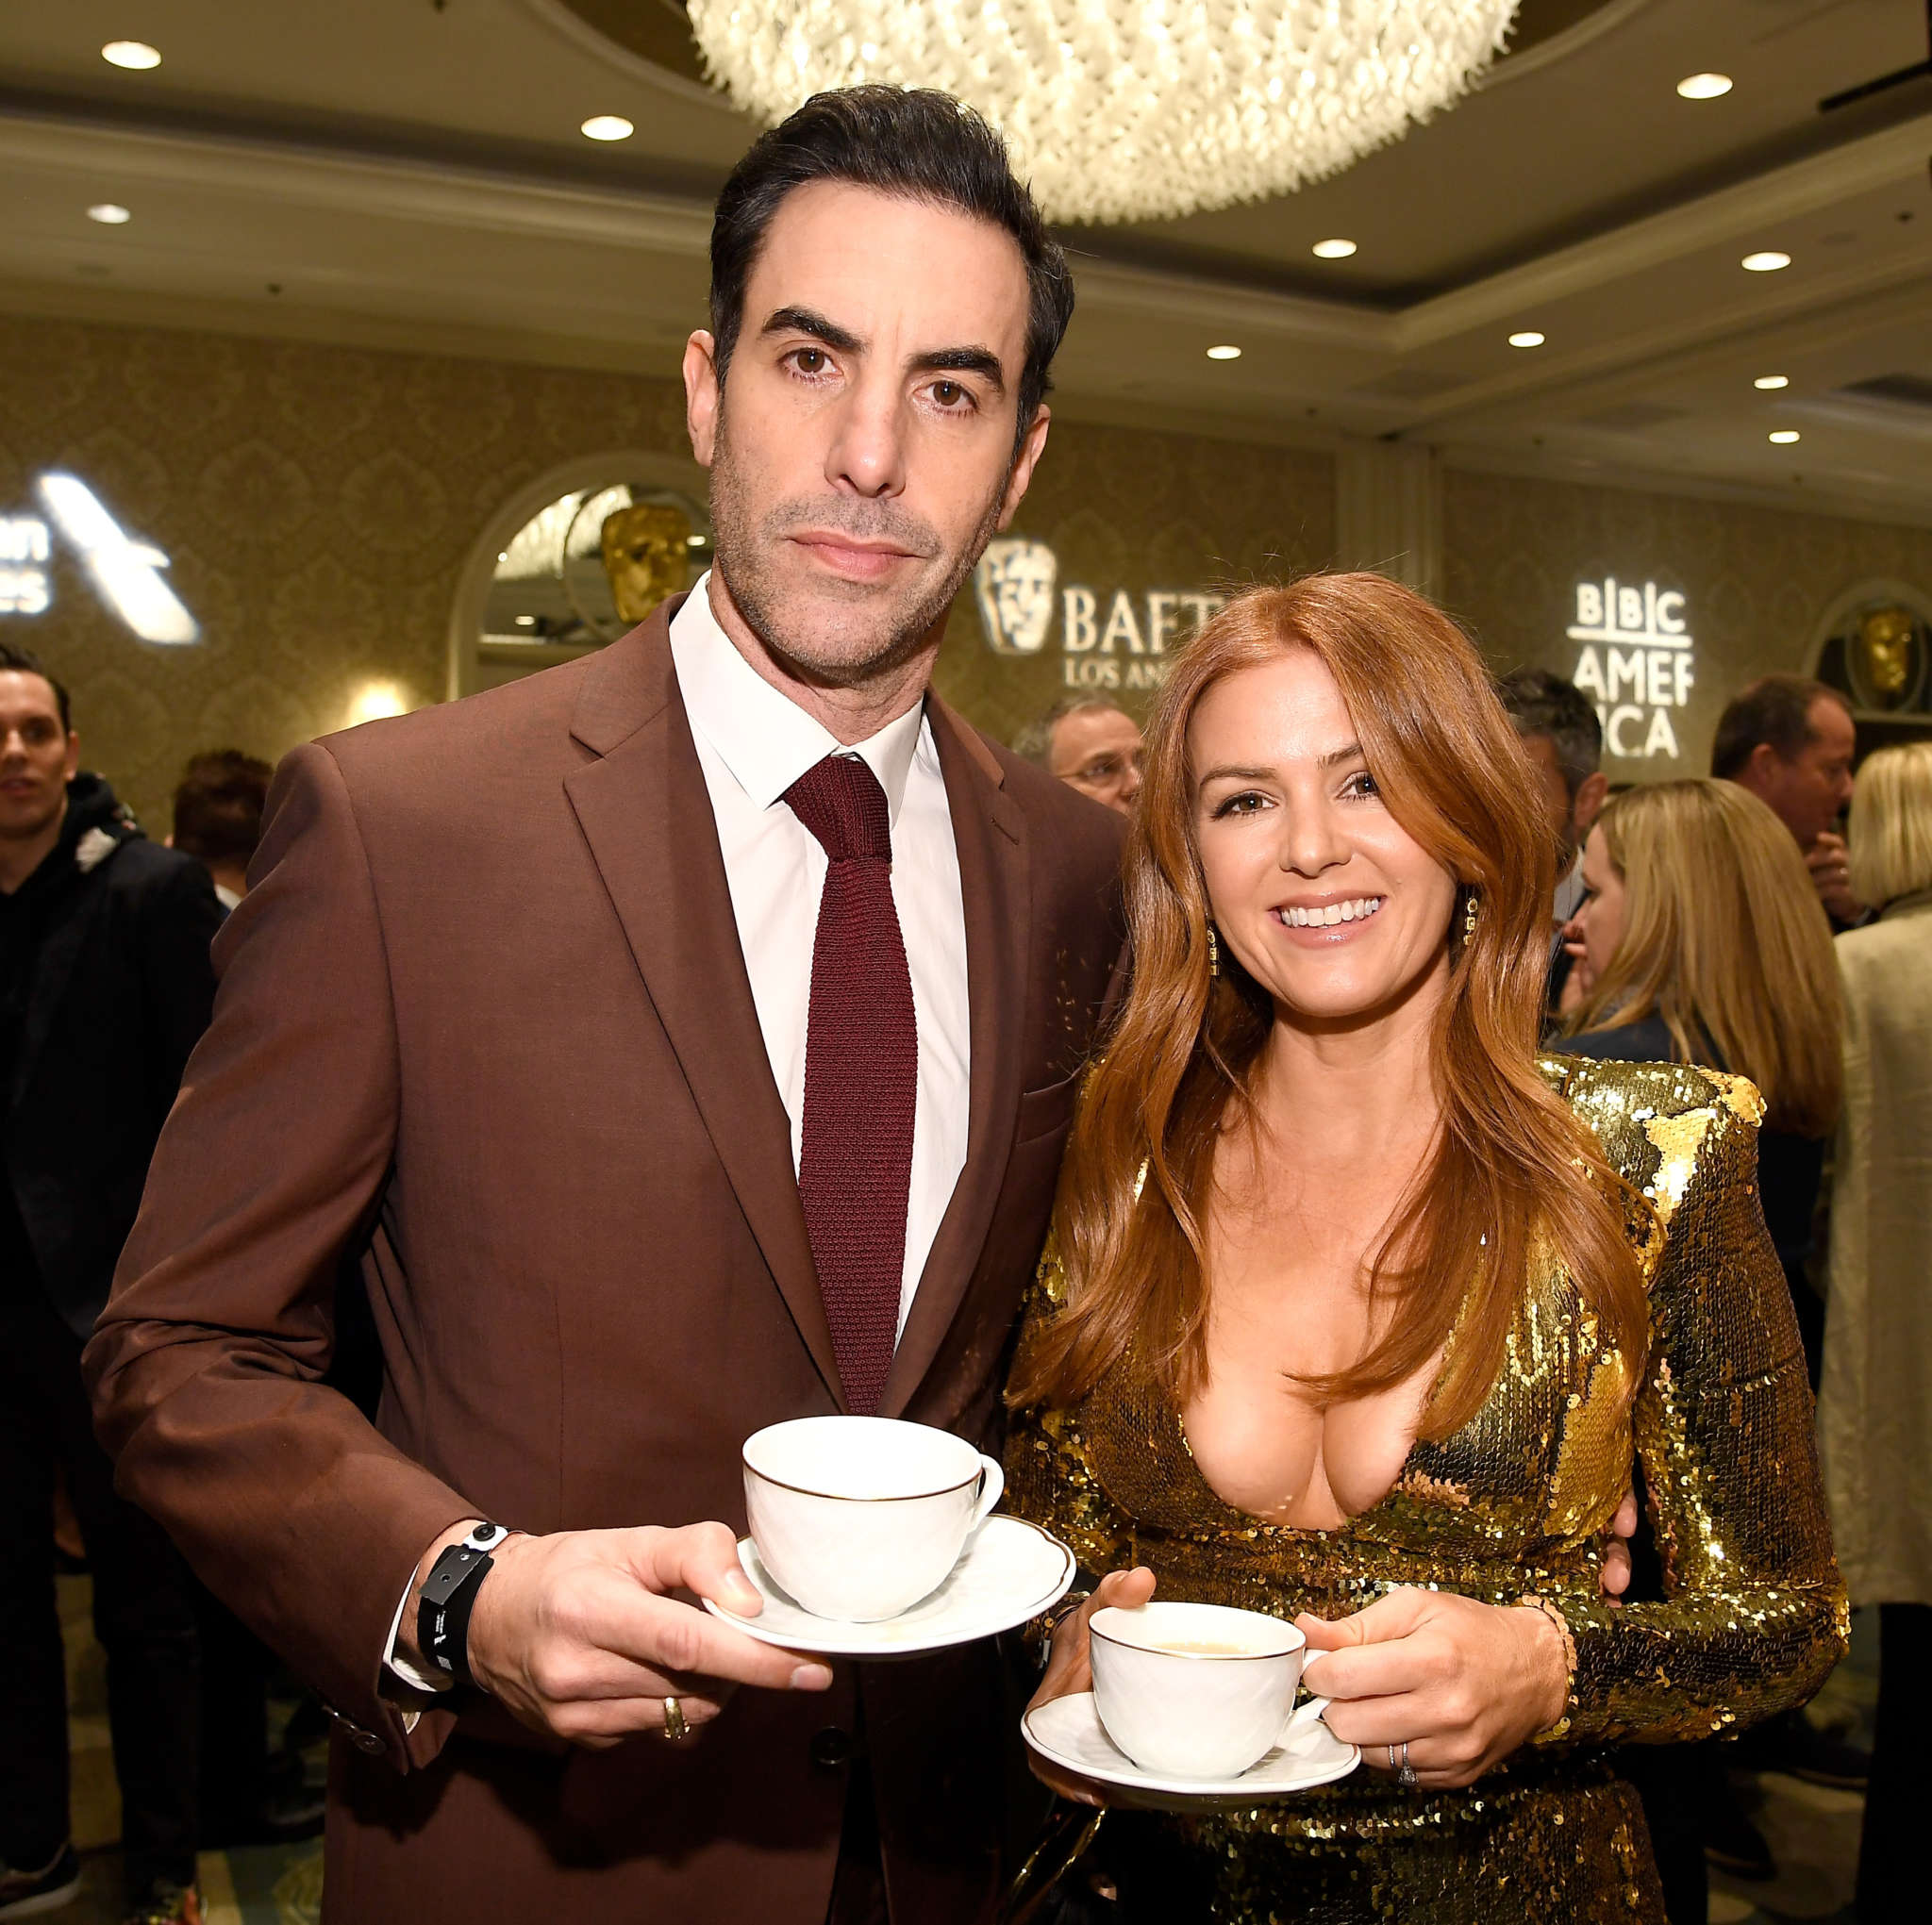 Celebrity Breaking News - Isla Fisher Reveals She Threatened To Never Speak To Her Husband Sacha Baron Cohen Again Because He Cut Her Favorite Joke Out Of The Newest 'Borat' Movie! | NewsBurrow thumbnail